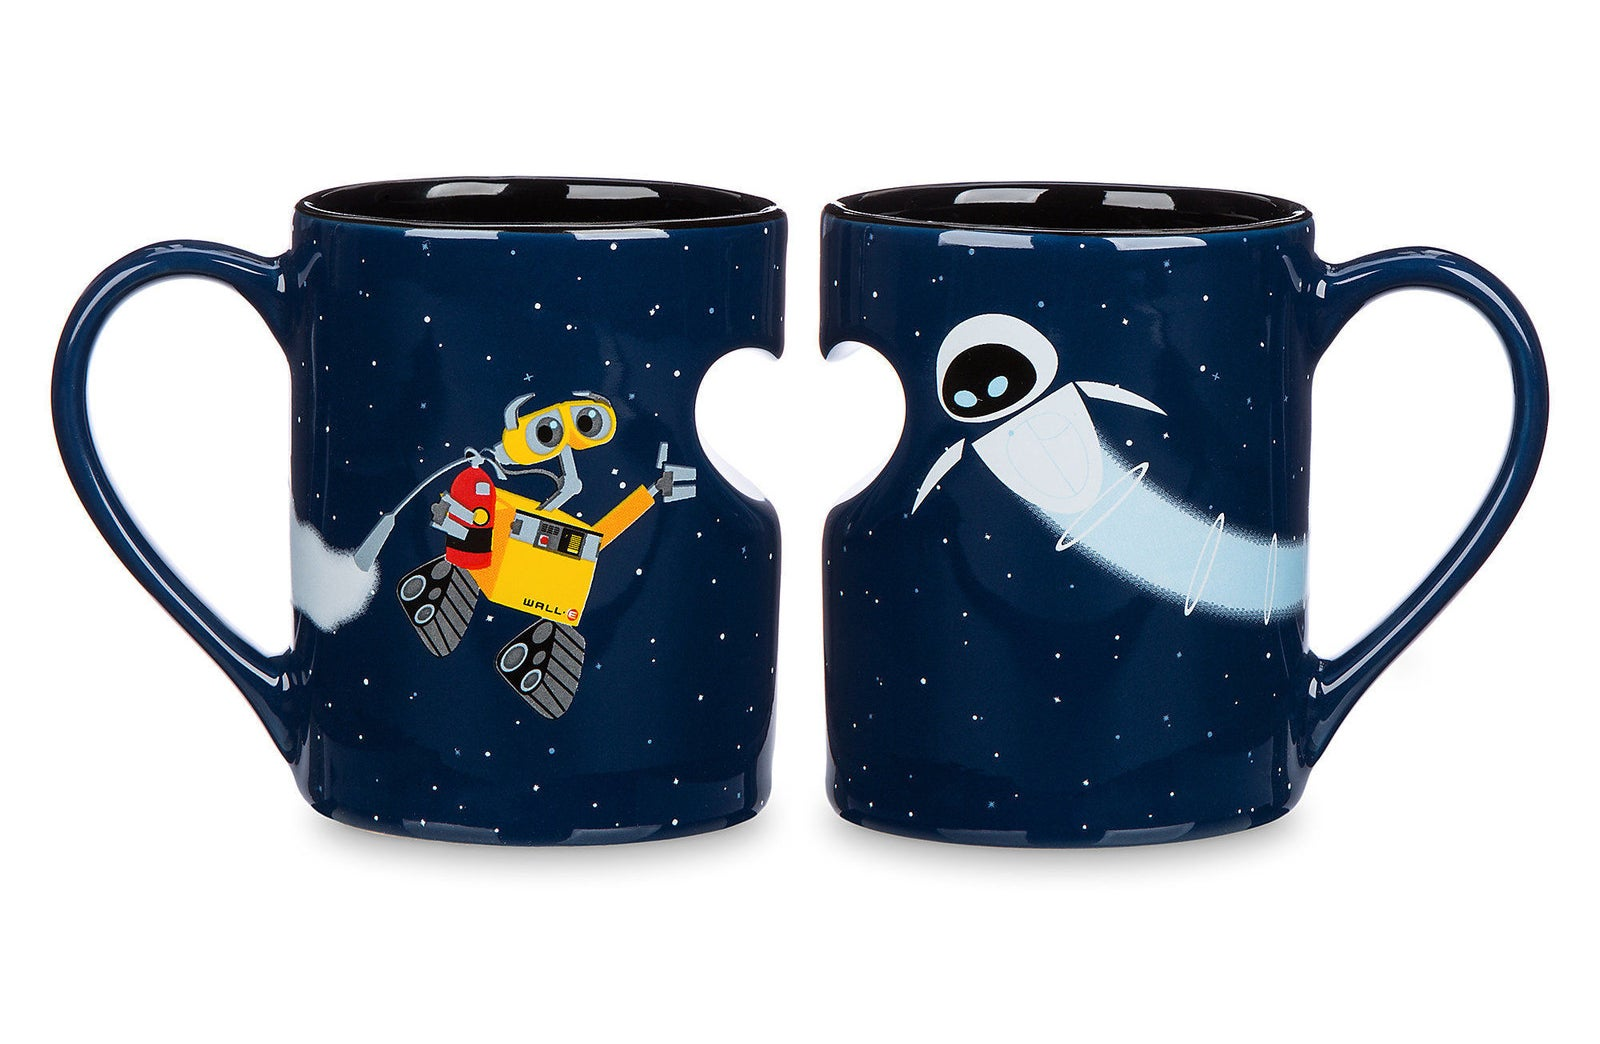 two space mugs next to each other with wall-e and eve and a half heart cut-out